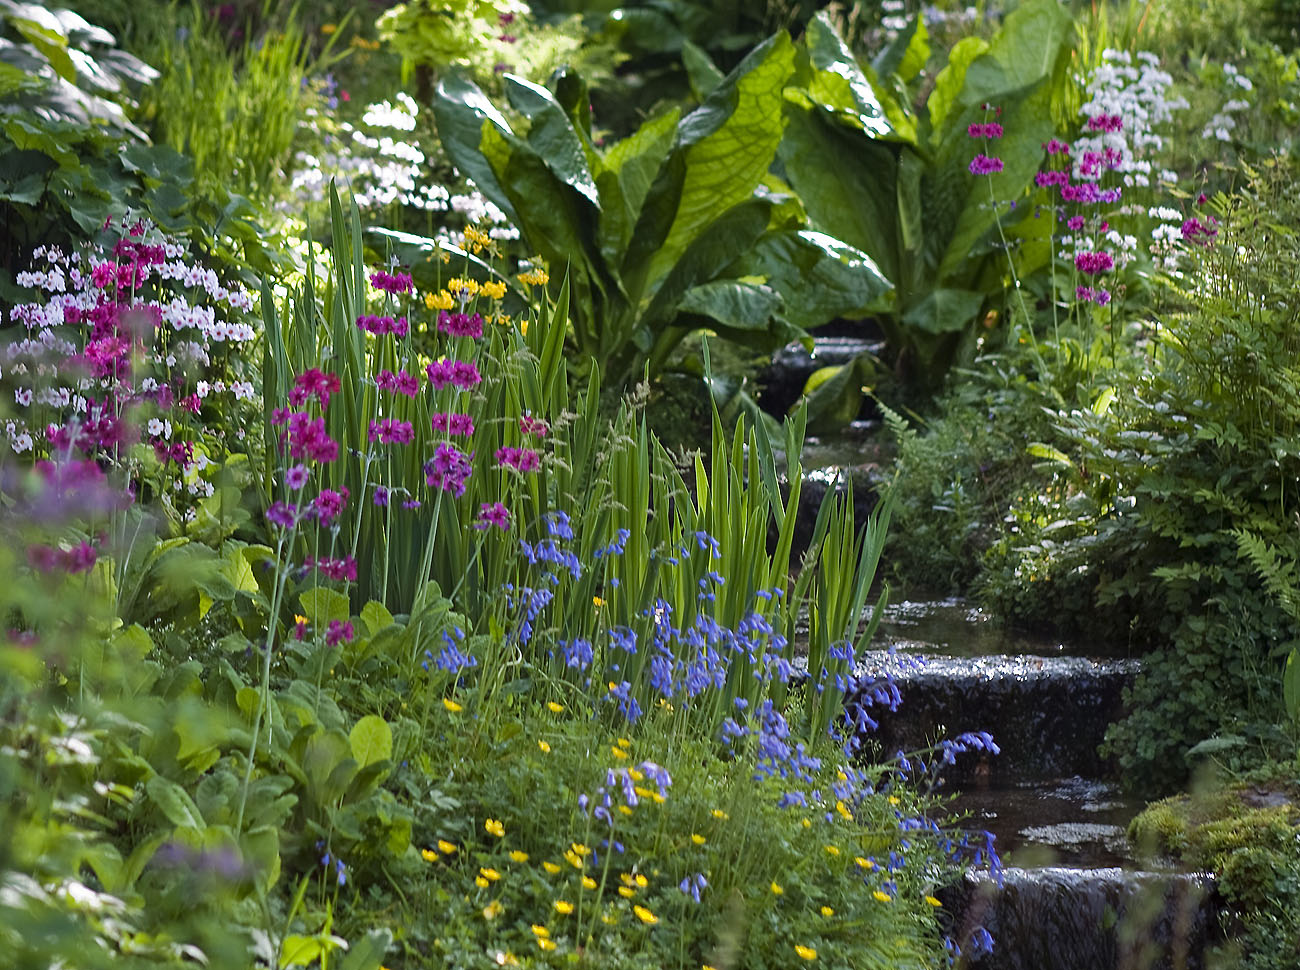 Wild flower planting, shrubbery, plants, tree planting, tree maintenance, lawn care, garden services Chesham, St Albans, Tring, Beaconsfield, Chalfont St Peter, Fulmer, Gerrards Cross, High Wycombe, Holmer Green, Little Chalfont